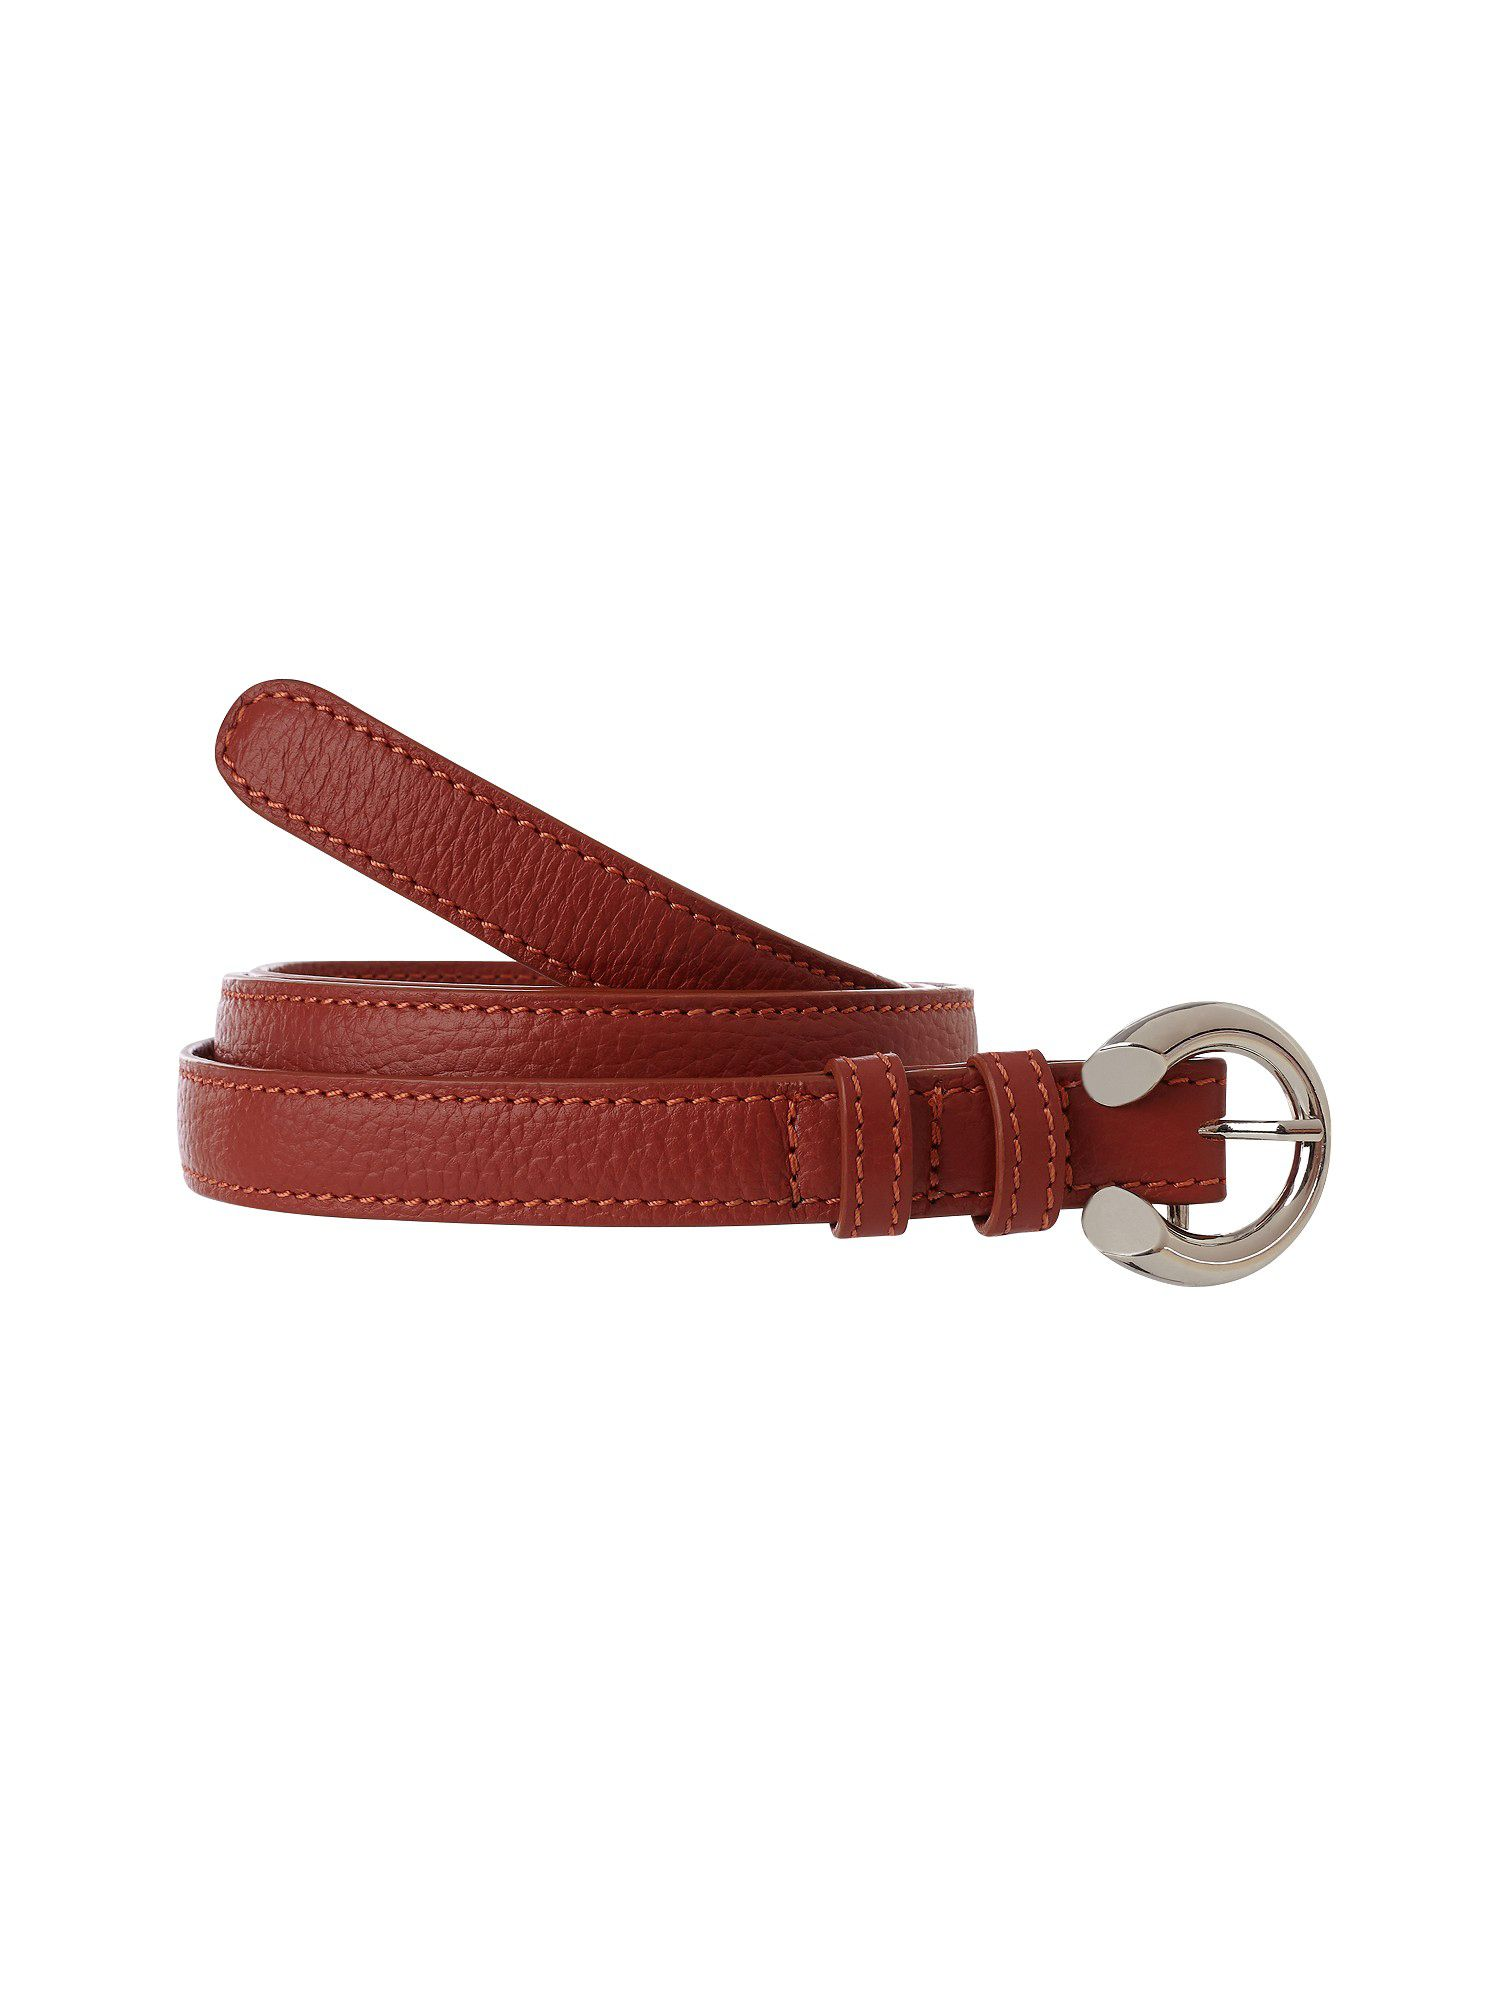 Orange skinny belt